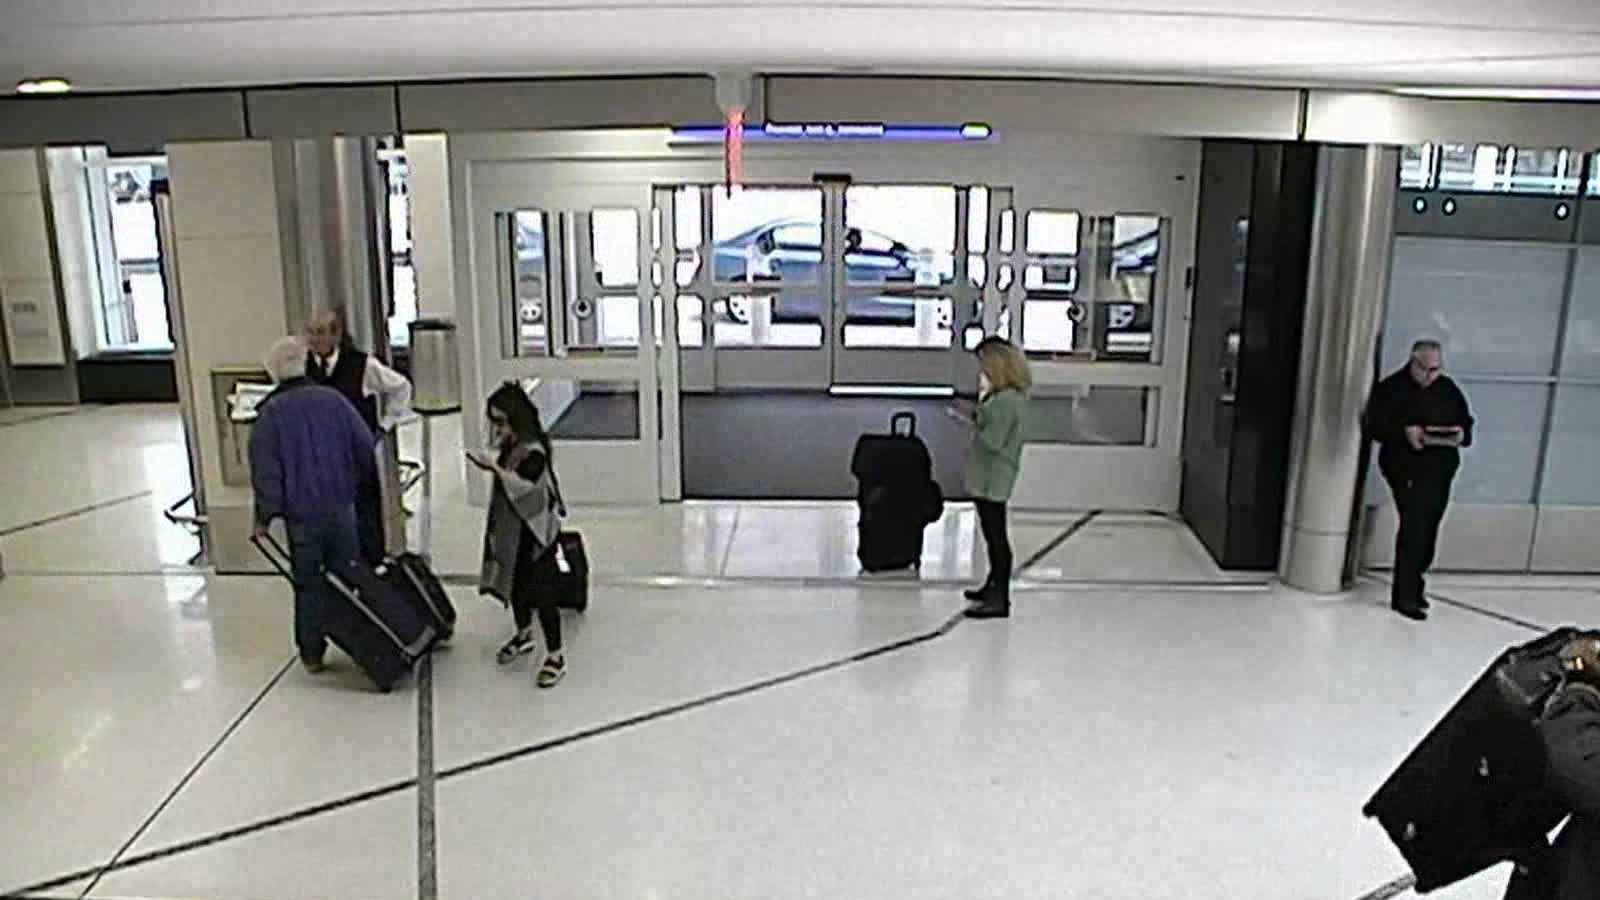 A Milwaukee man is charged with stealing luggage from Mitchell International Airport. Watch as he leaves with it.